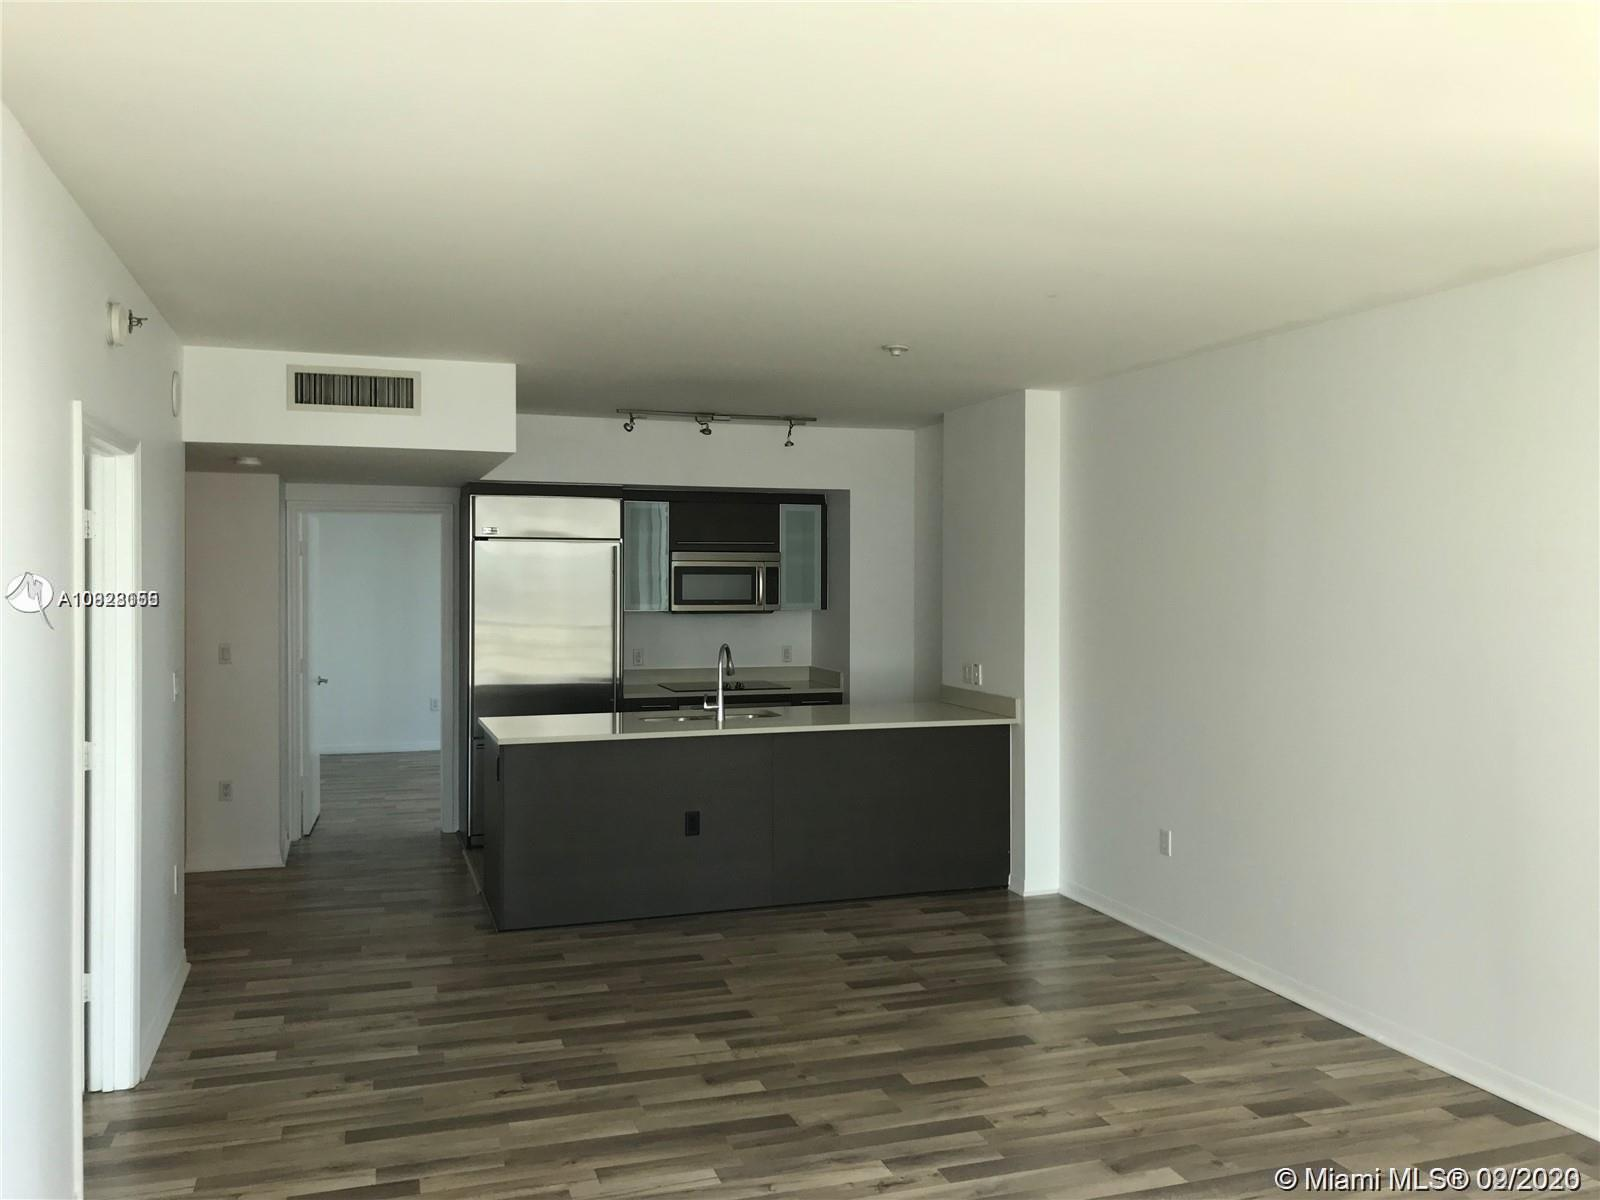 Amazing 2 bedroom 2 bathroom unit in the heart of brickell! walking distance to everything you need!